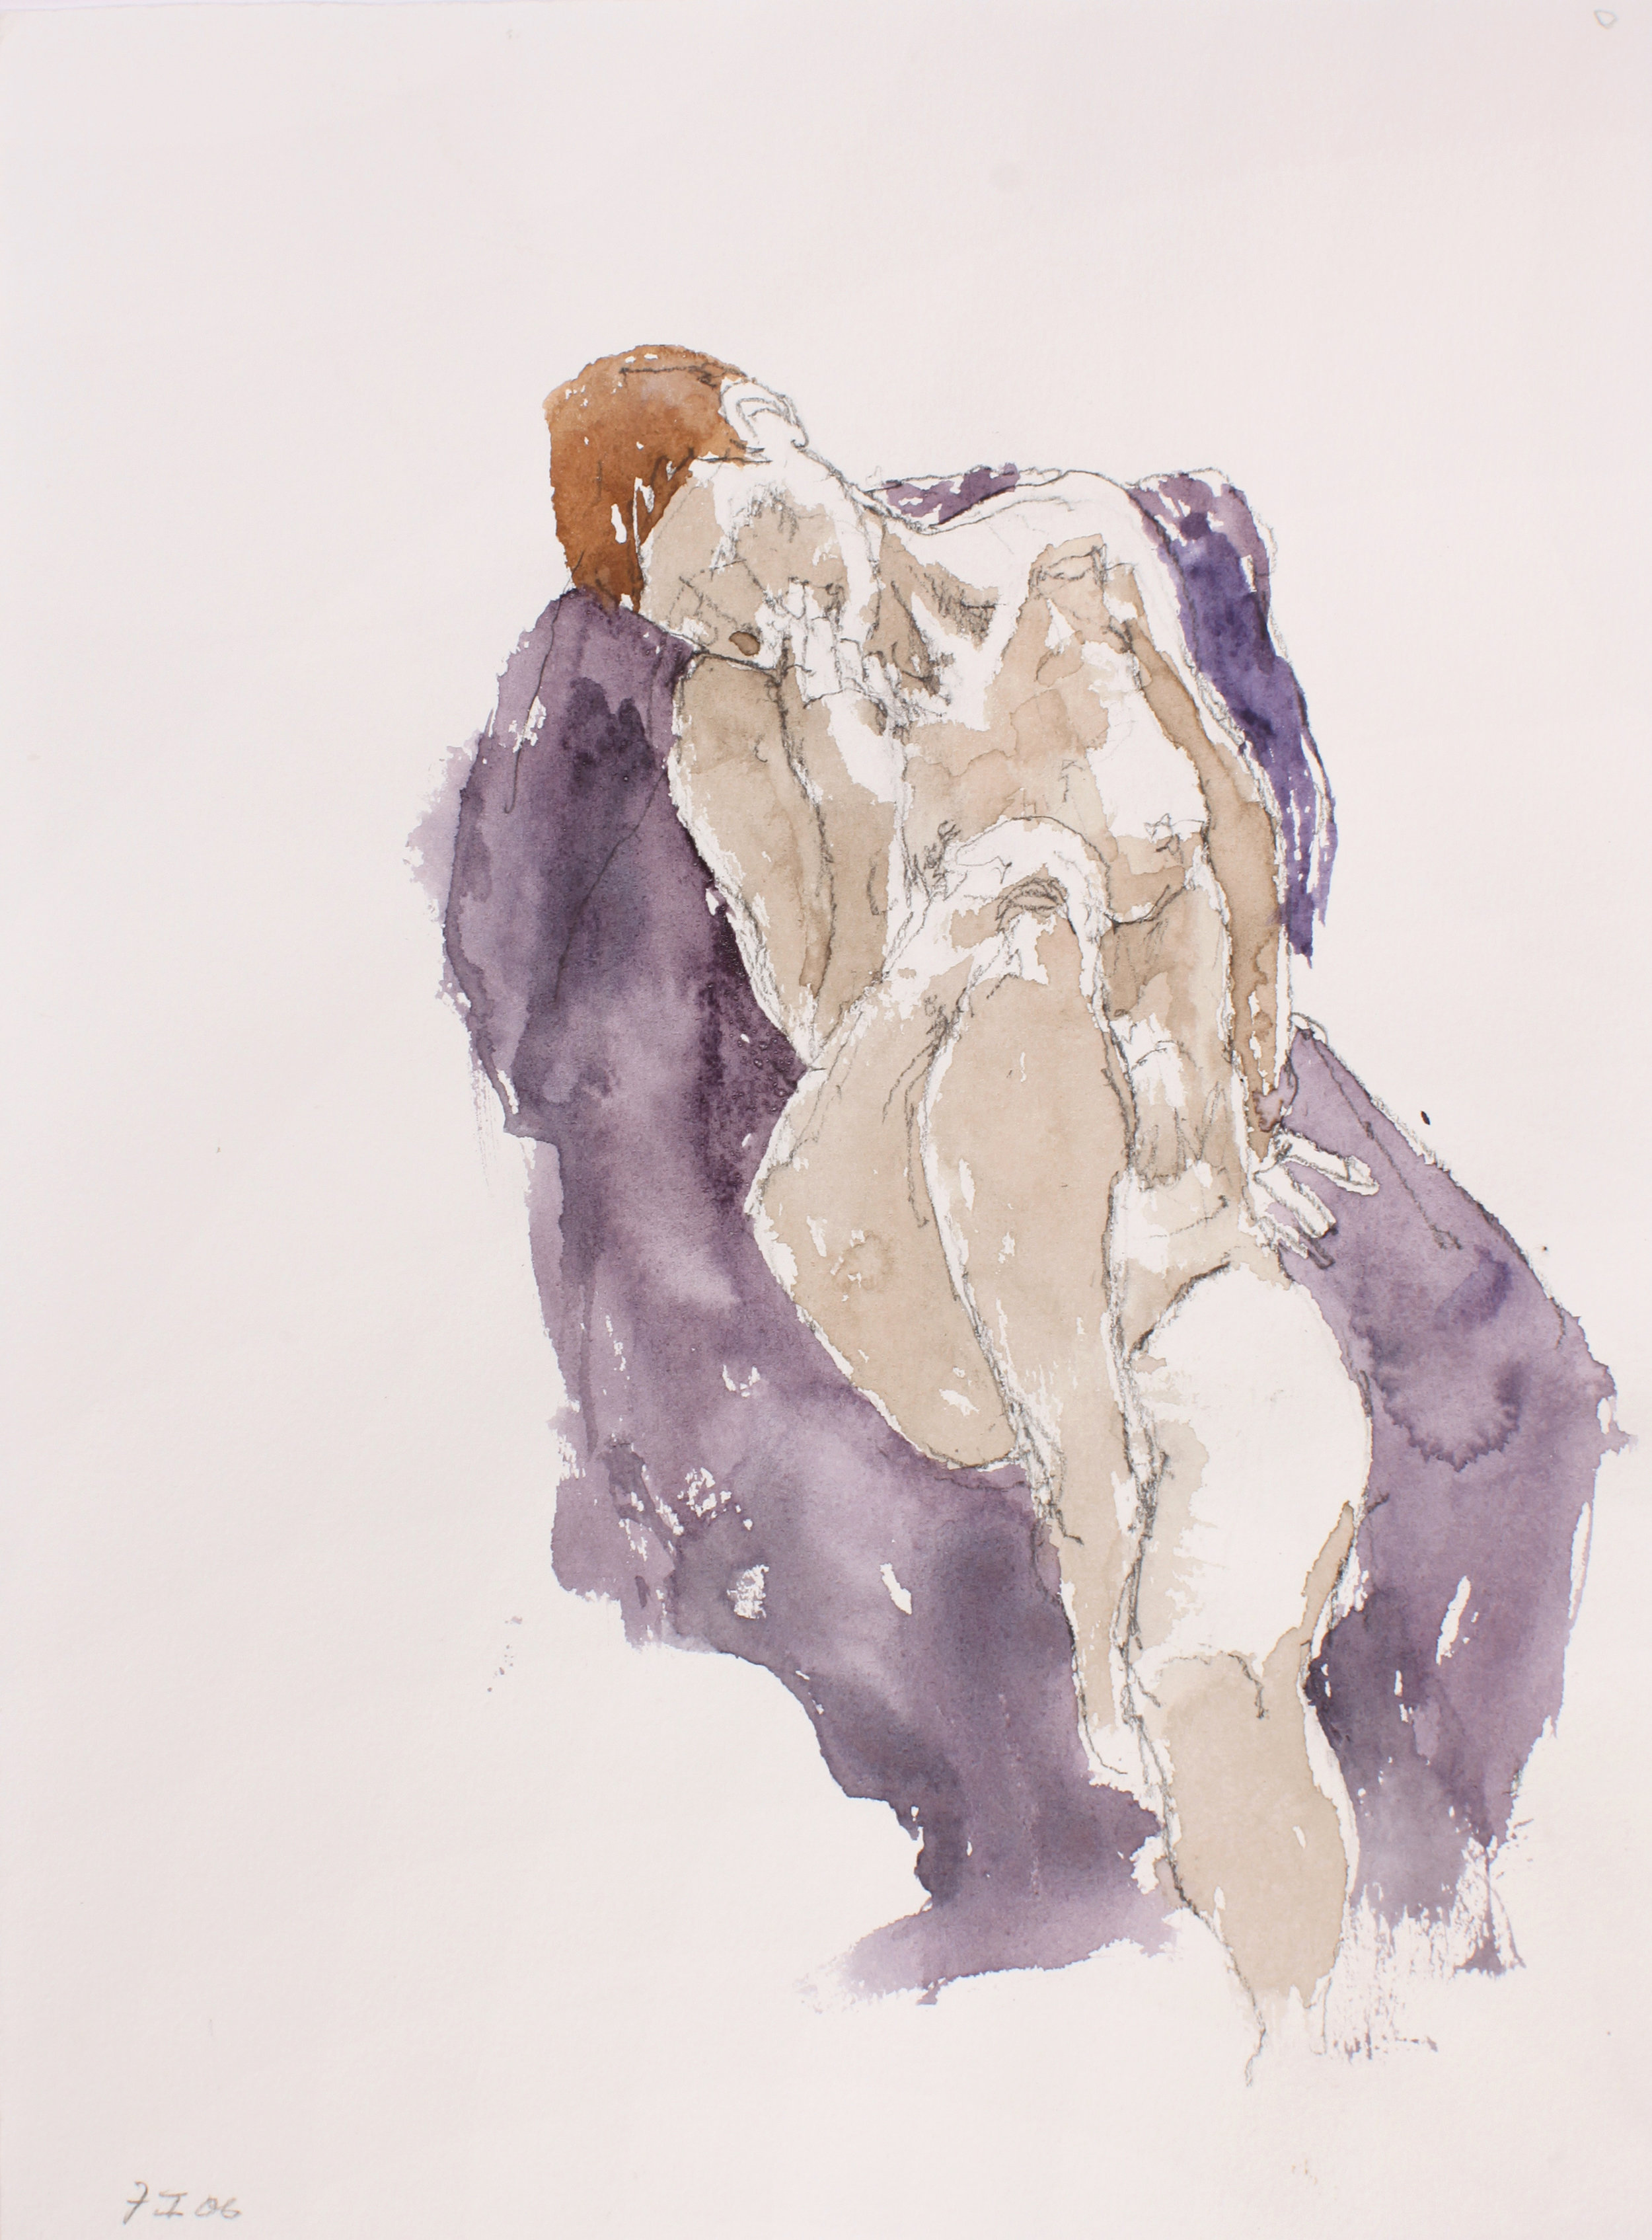 2006_Seated_Nude_with_Raised_Leg_on_Mauve_Cloth_Watercolour_on_paper_15x11inches_WPF096.jpg